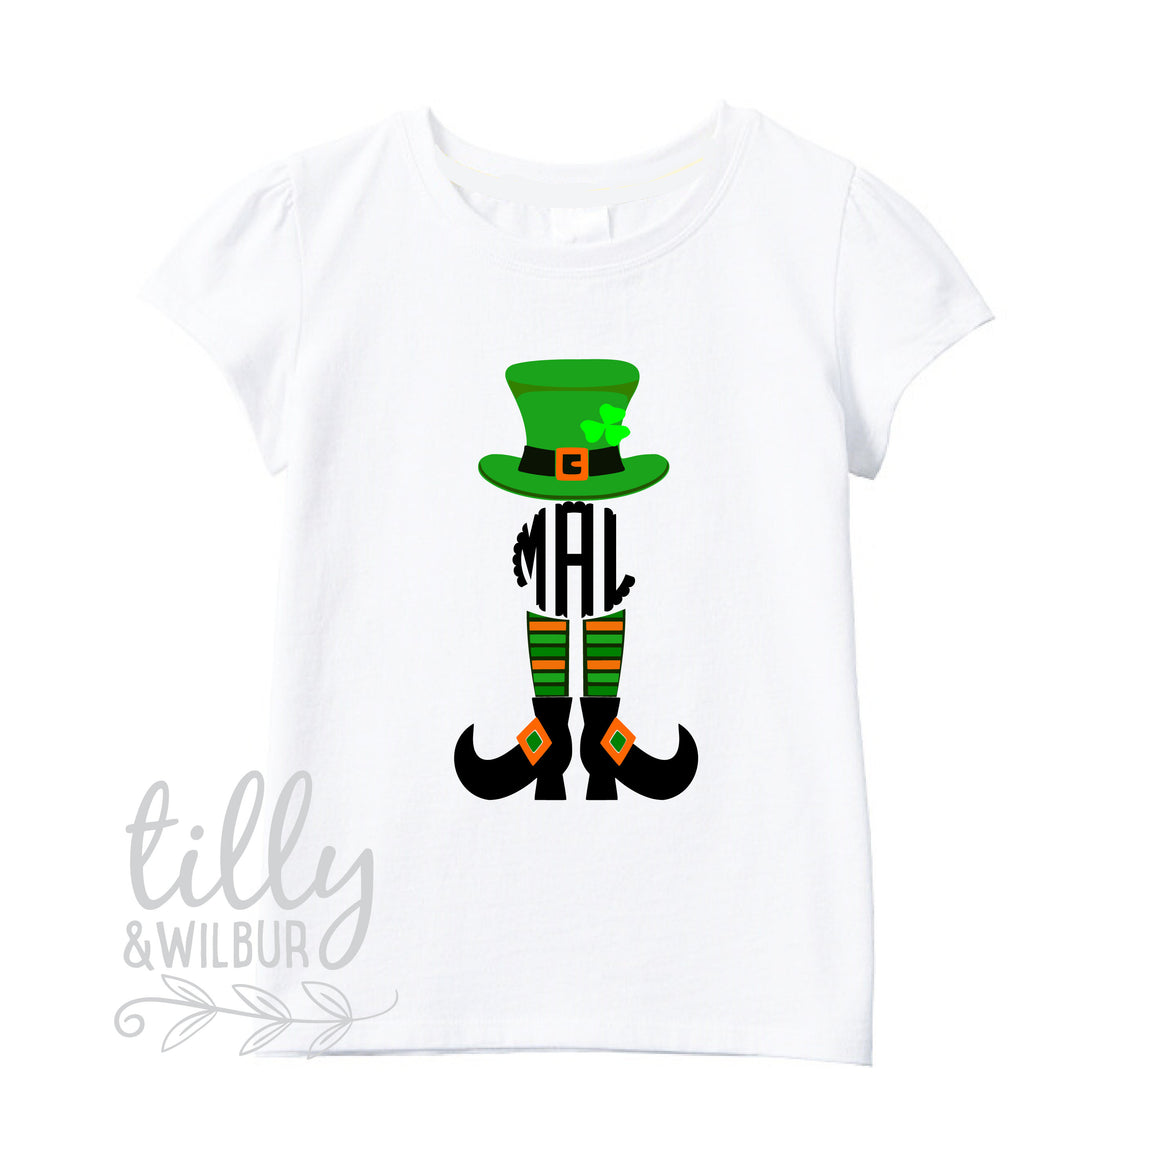 St Patrick's Day Personalised Girls T-Shirt, St Patrick's Day Shirt Personalised With Monogram Initials, Happy St Paddy's Day, Irish, Celts